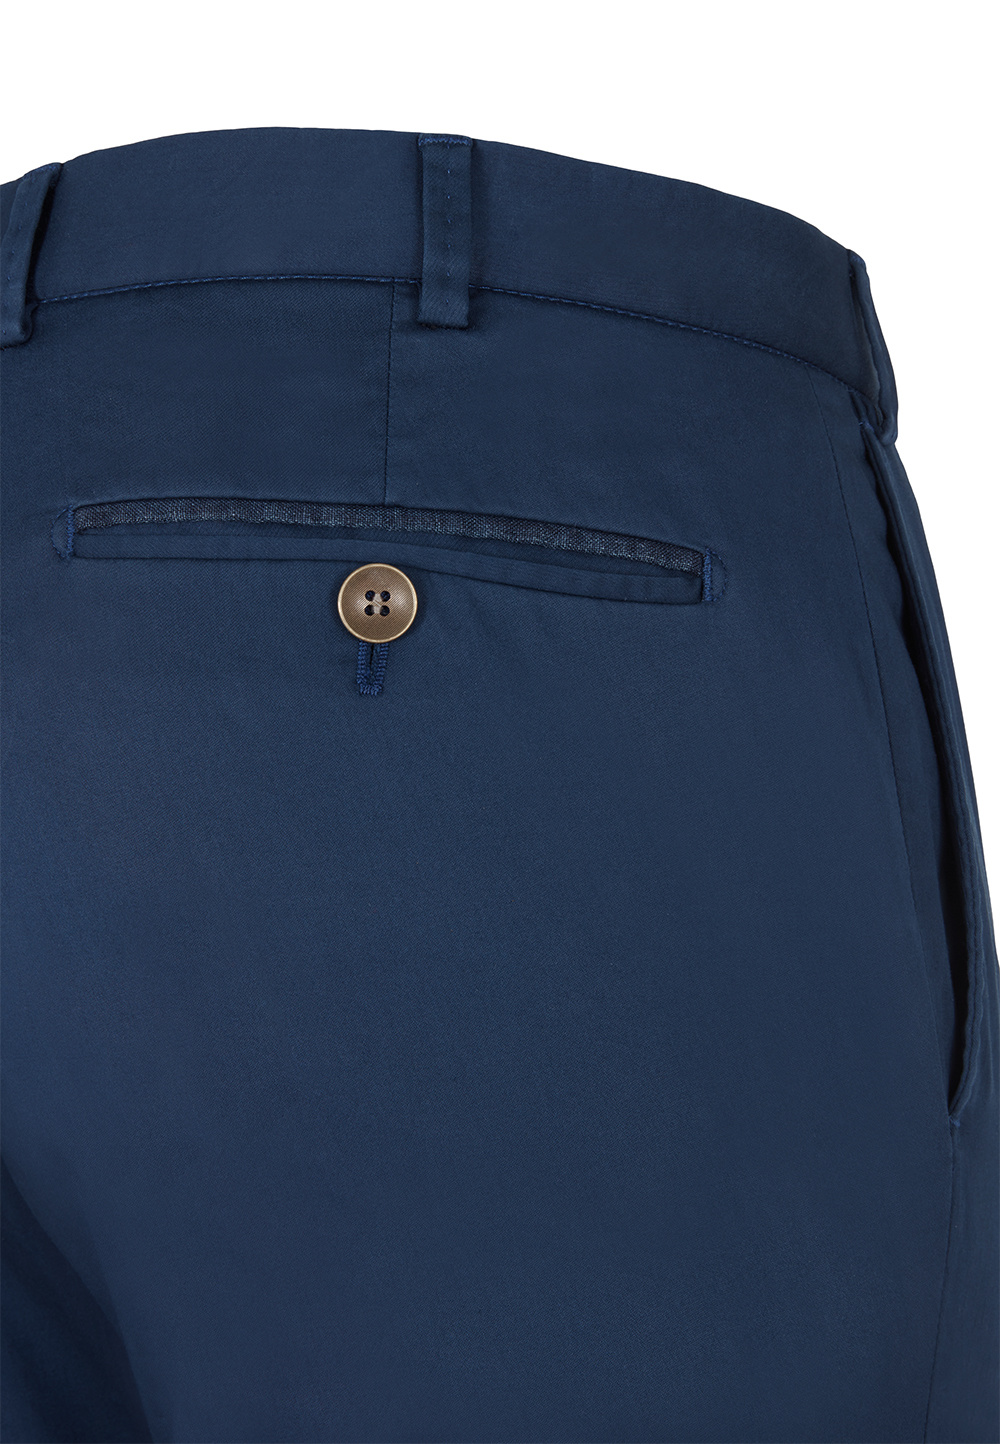 Hiltl Luxury Supima Chino